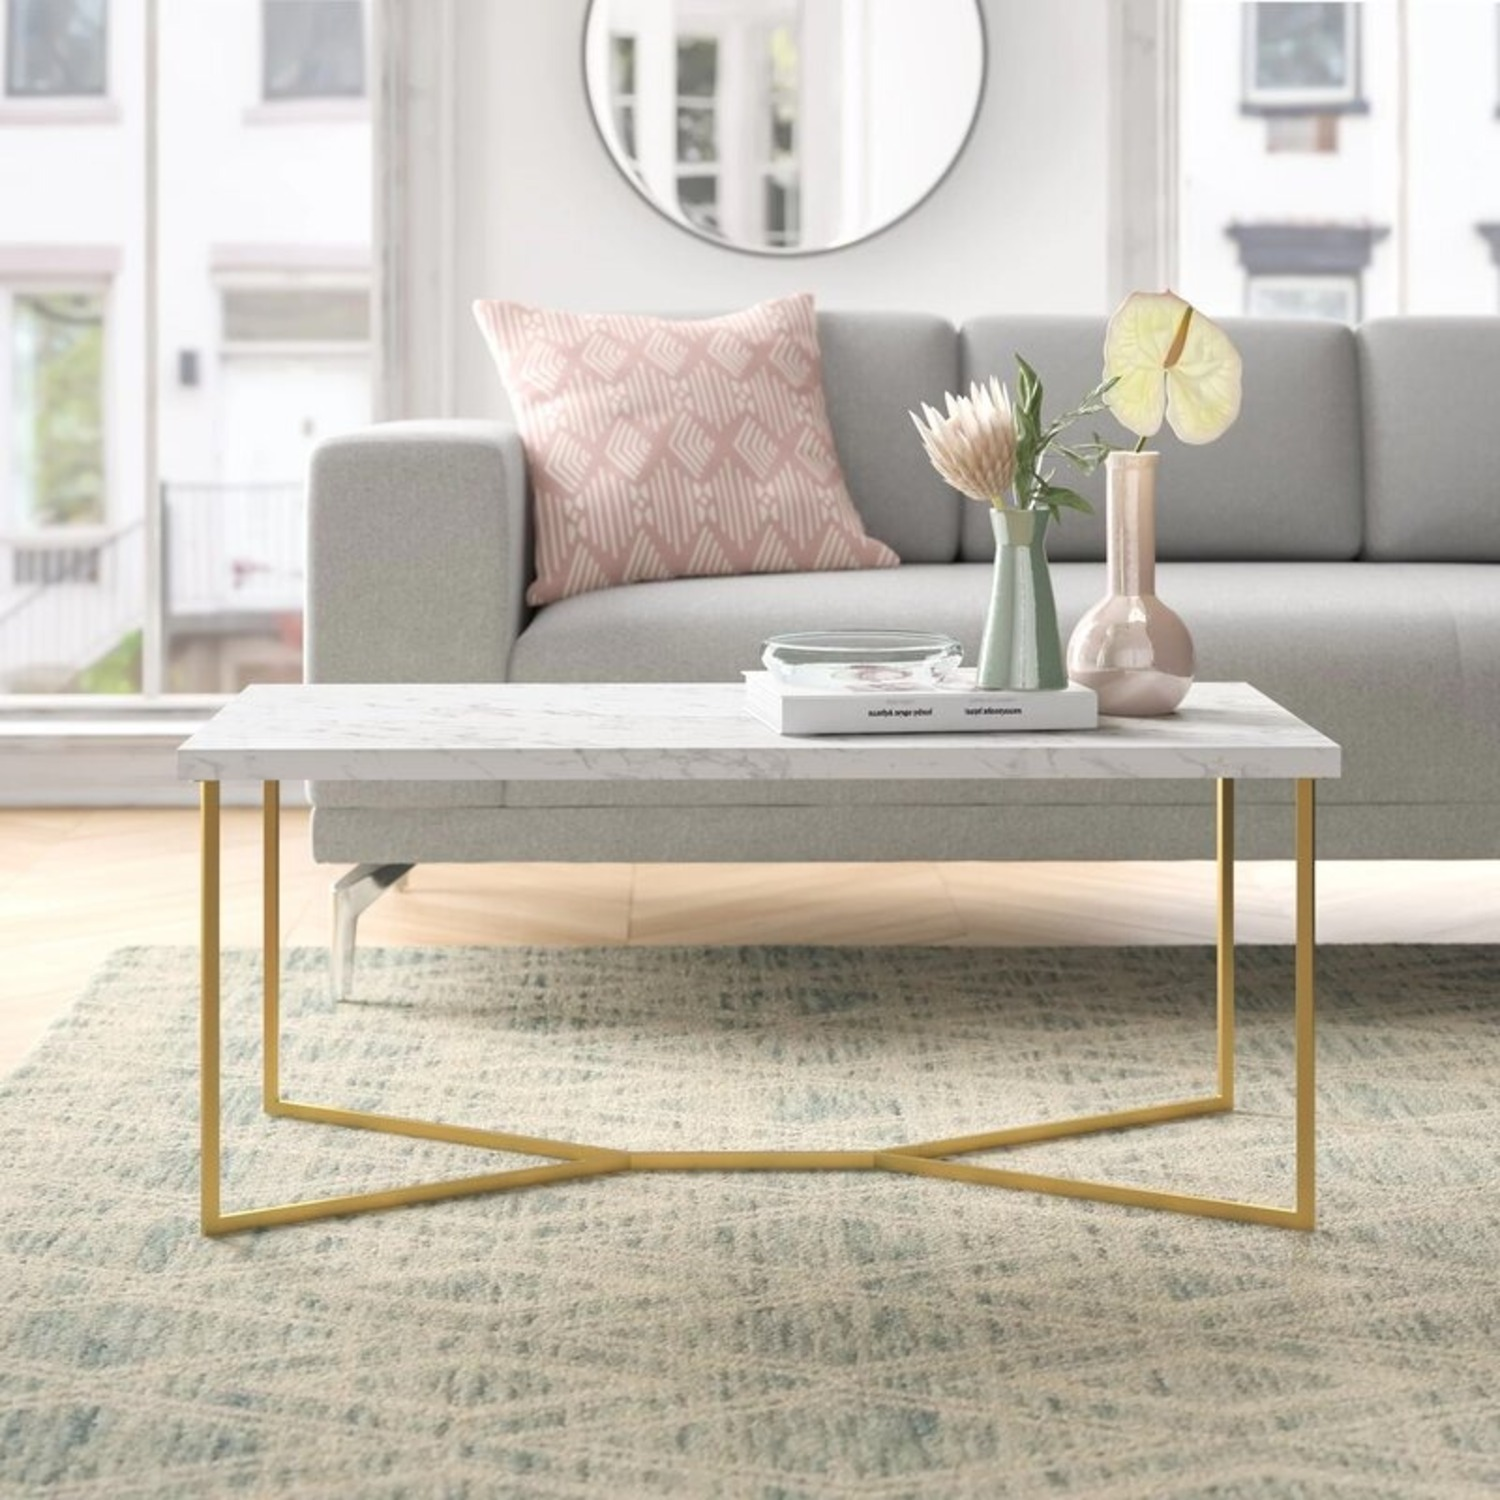 Wayfair Faux White Marble Coffee Table - image-1